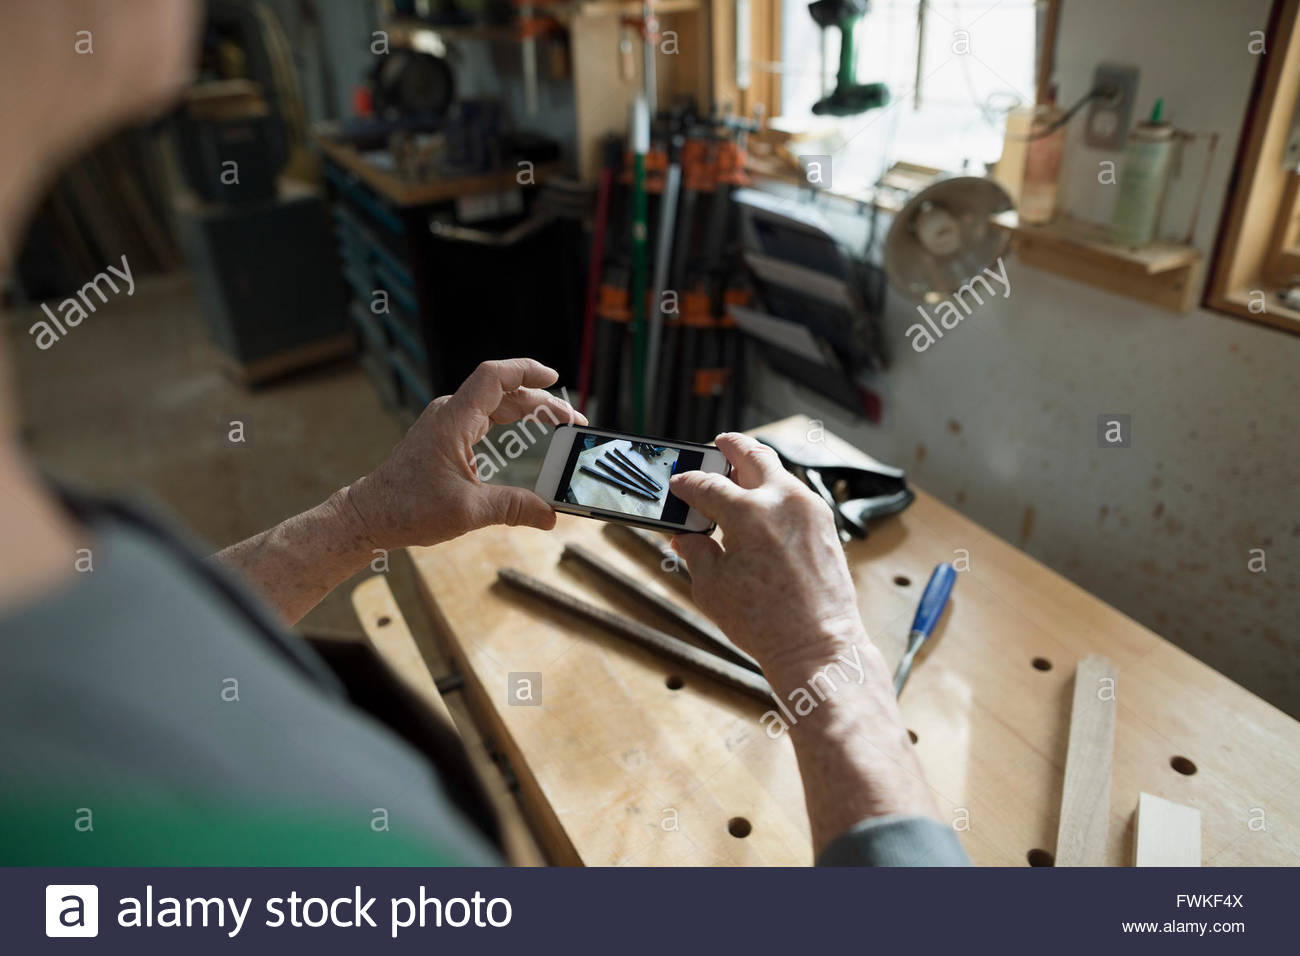 Carpenter photographing tools with camera phone in workshop - Stock Image